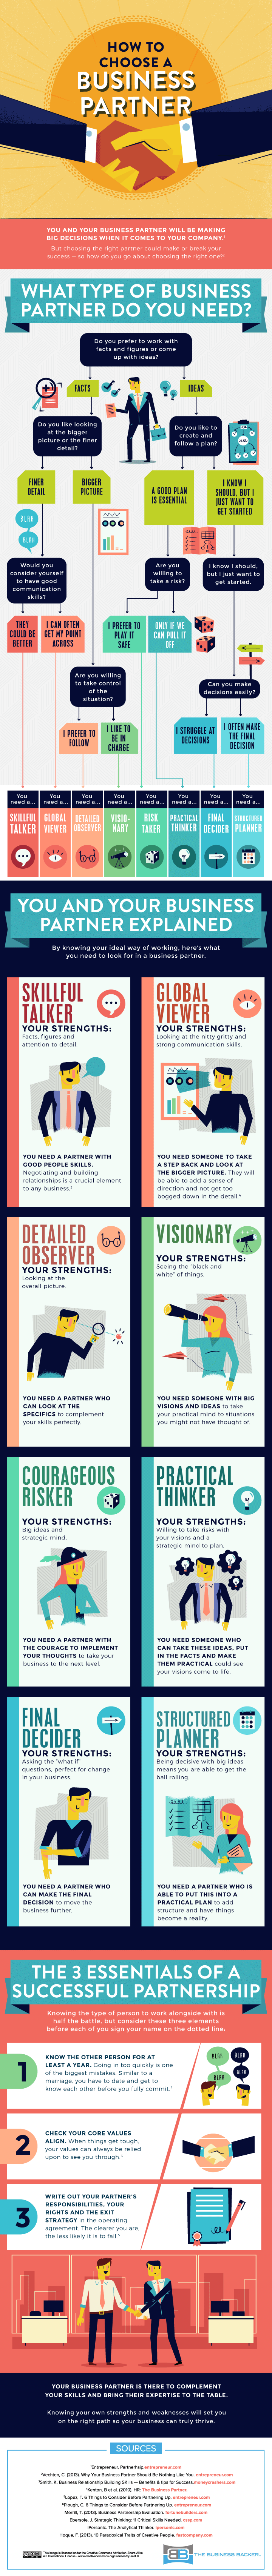 How to Choose a Business Partner (Infographic)